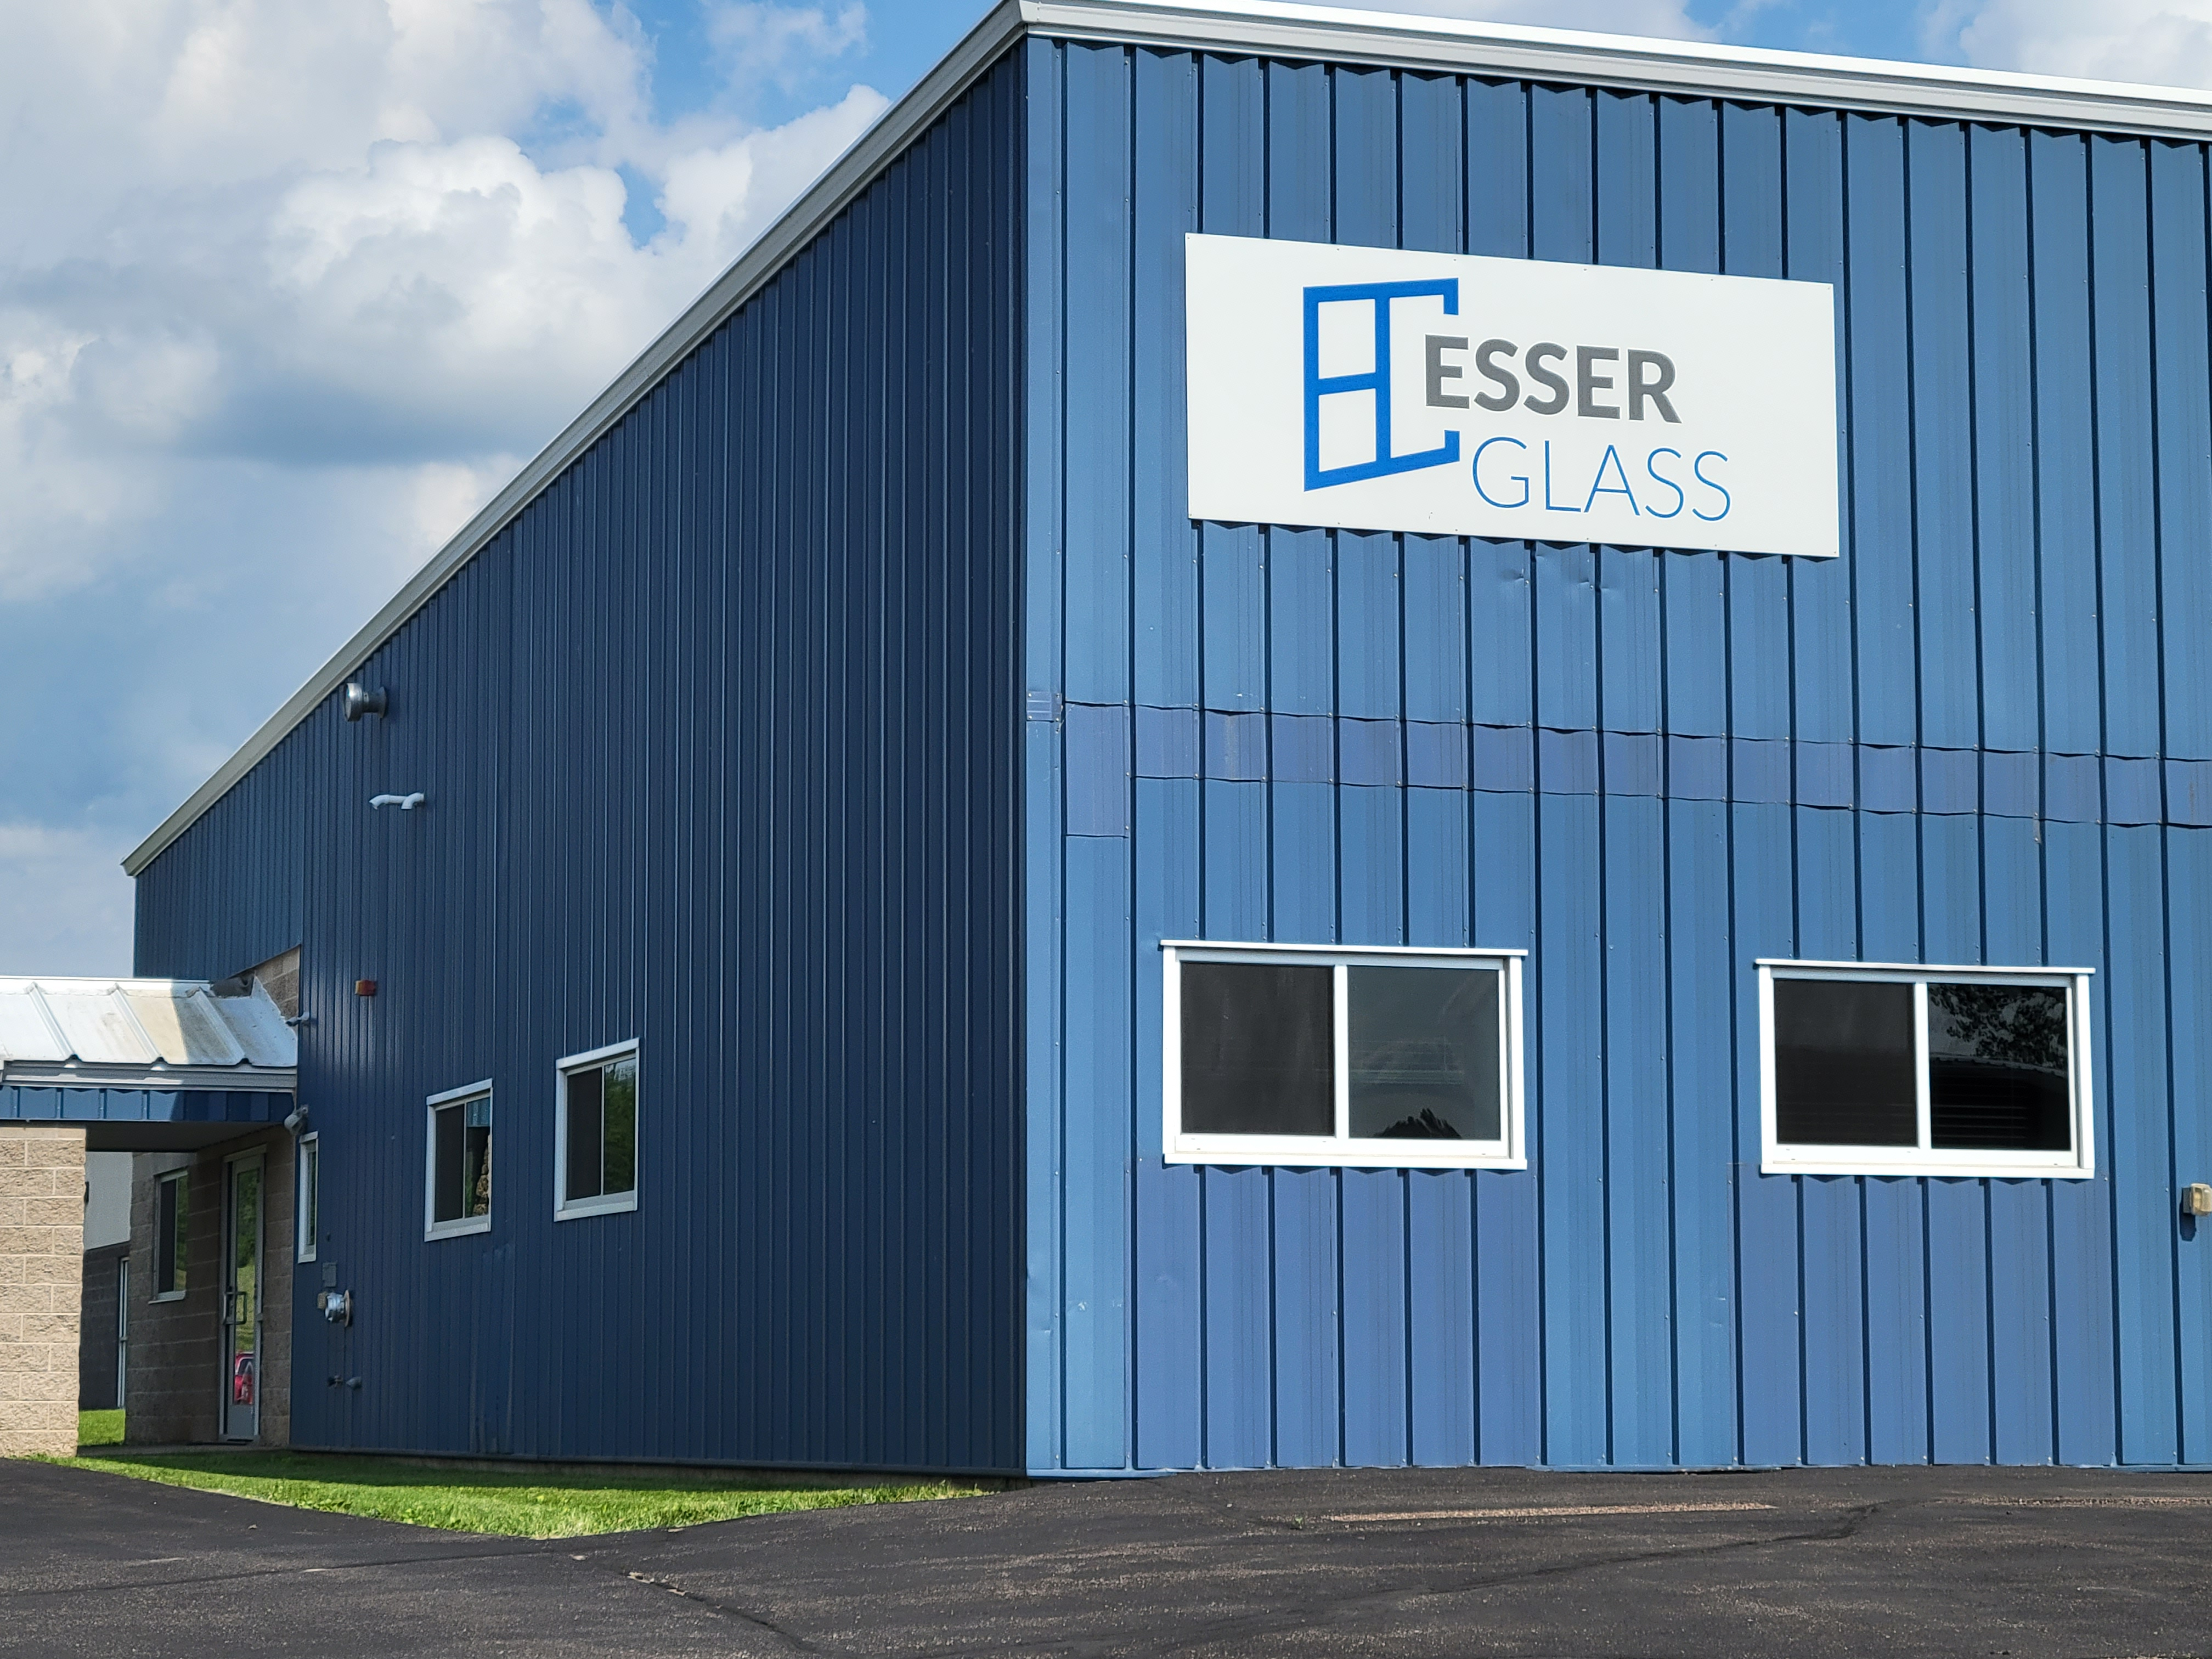 Esser Glass Building